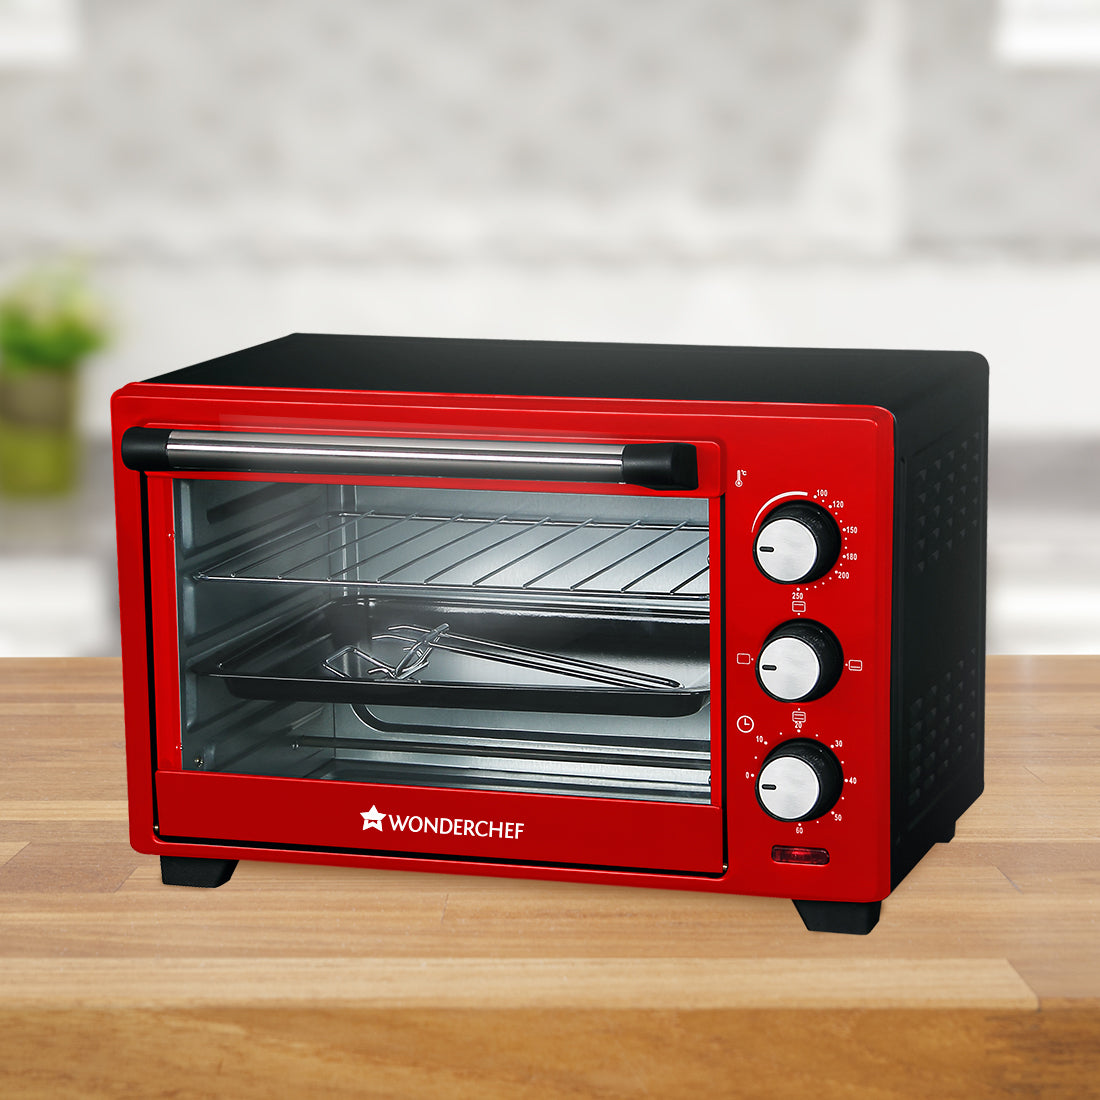 Oven Toaster Griller (OTG) Crimson Edge - 19 Litres - with Auto-shut Off, Heat-resistant Tempered Glass, Multi-stage Heat Selection, 2 Years Warranty, 1280W, Red